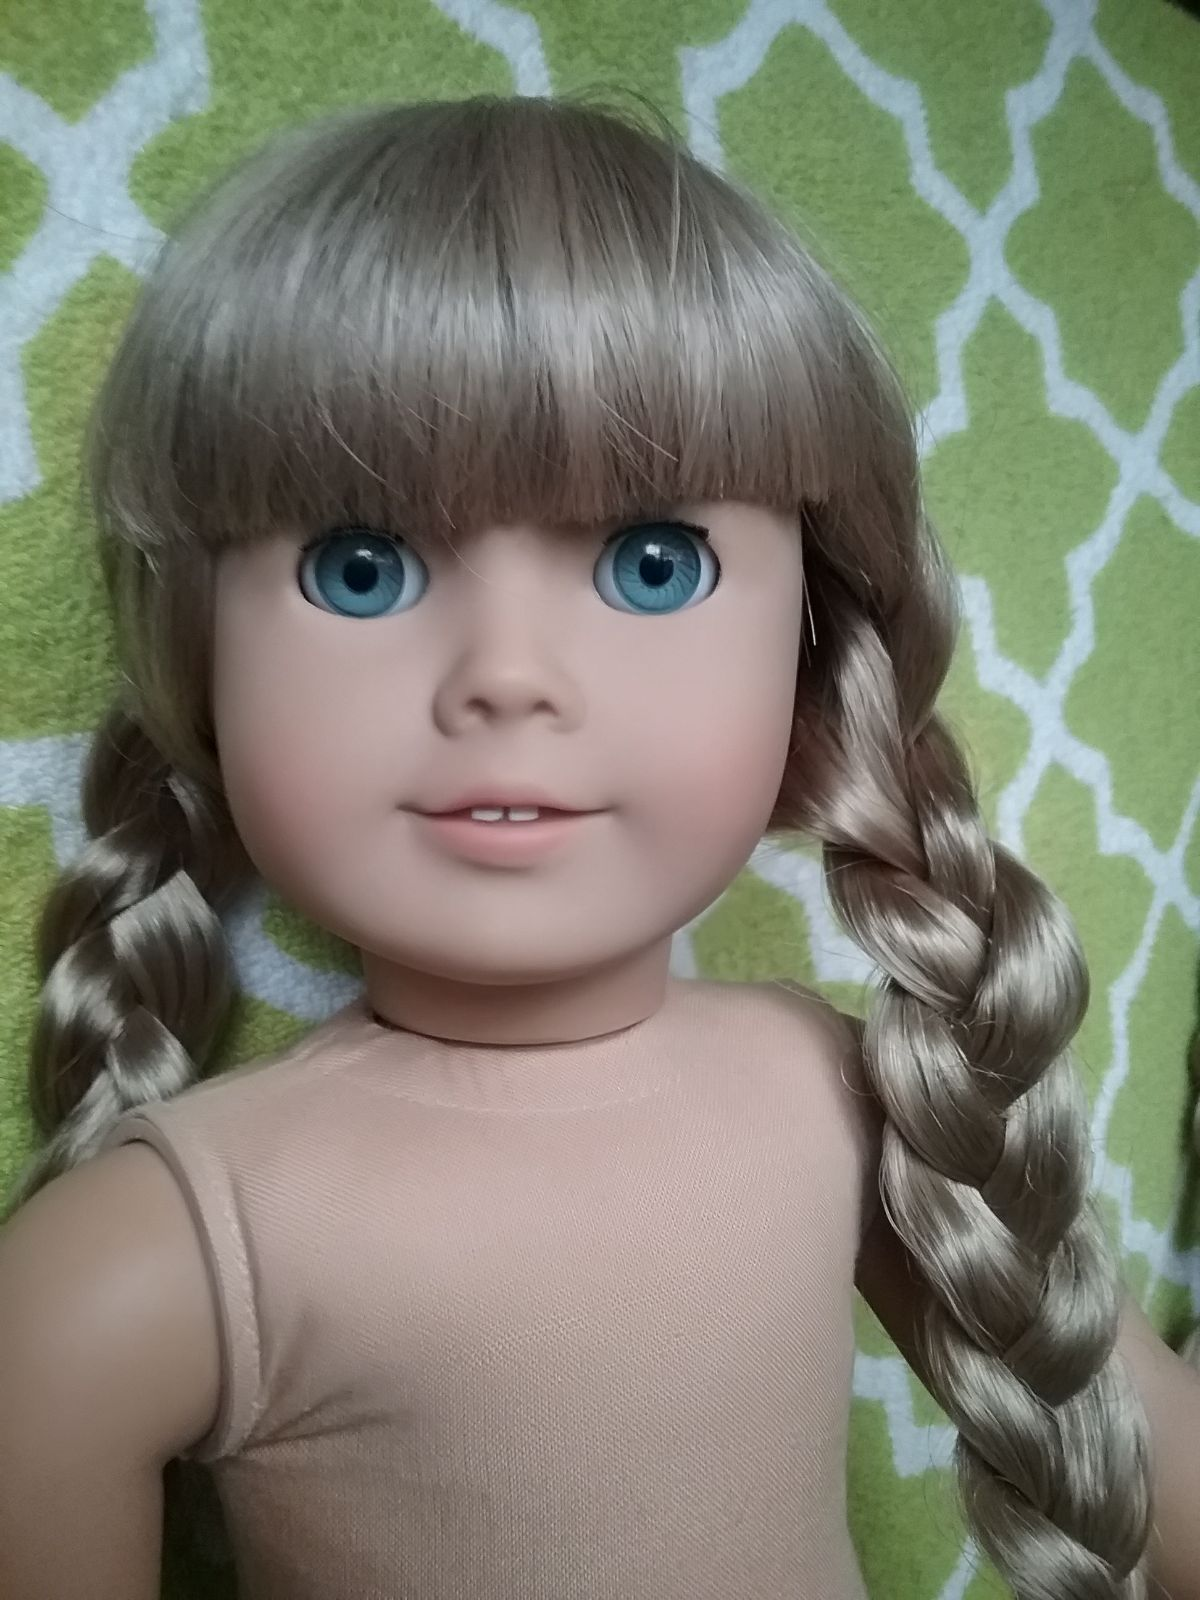 American Girl Doll Neck Stamp : american, stamp, Vintage, Kristen, Pleasant, Company, Stamp, Condition, Clean, Marks,, Ti…, American, Girl,, Doll,